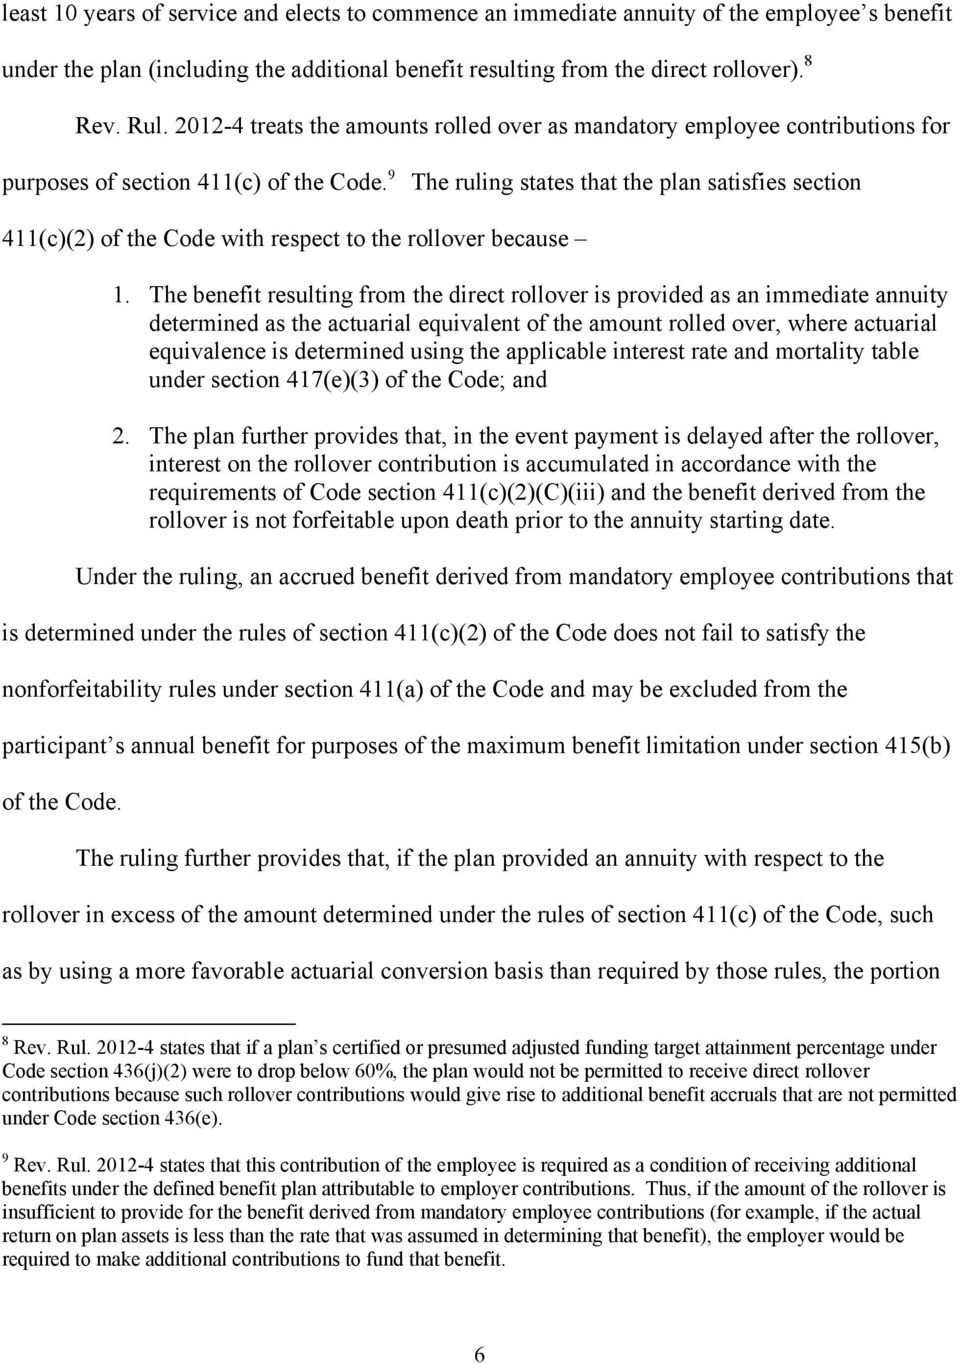 9 The ruling states that the plan satisfies section 411(c)(2) of the Code with respect to the rollover because 1.